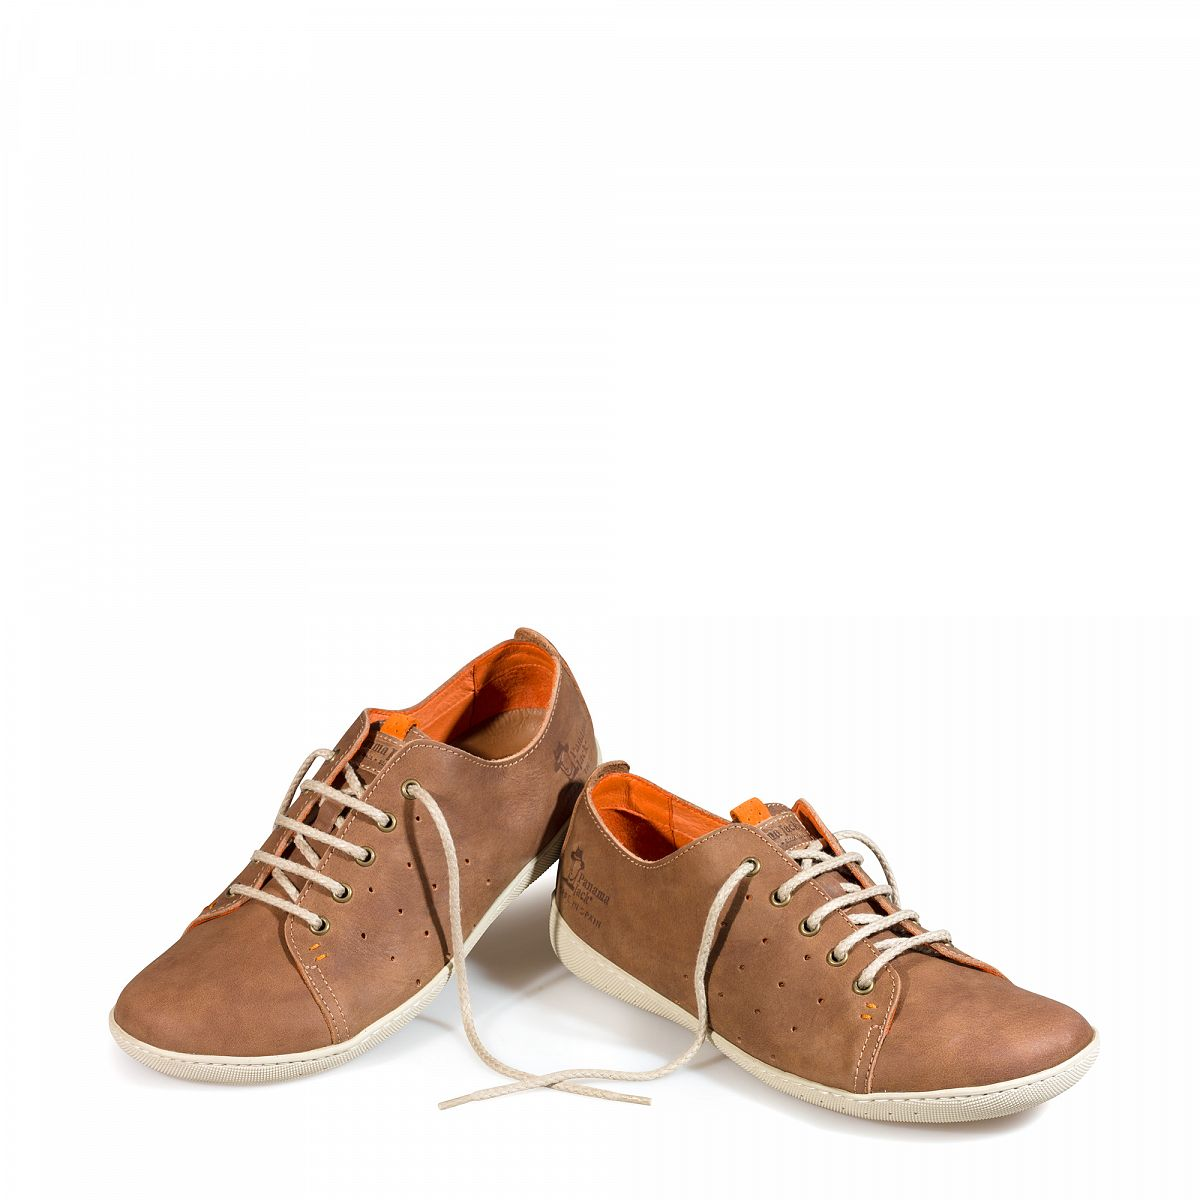 s shoes ireland bark panama official shop